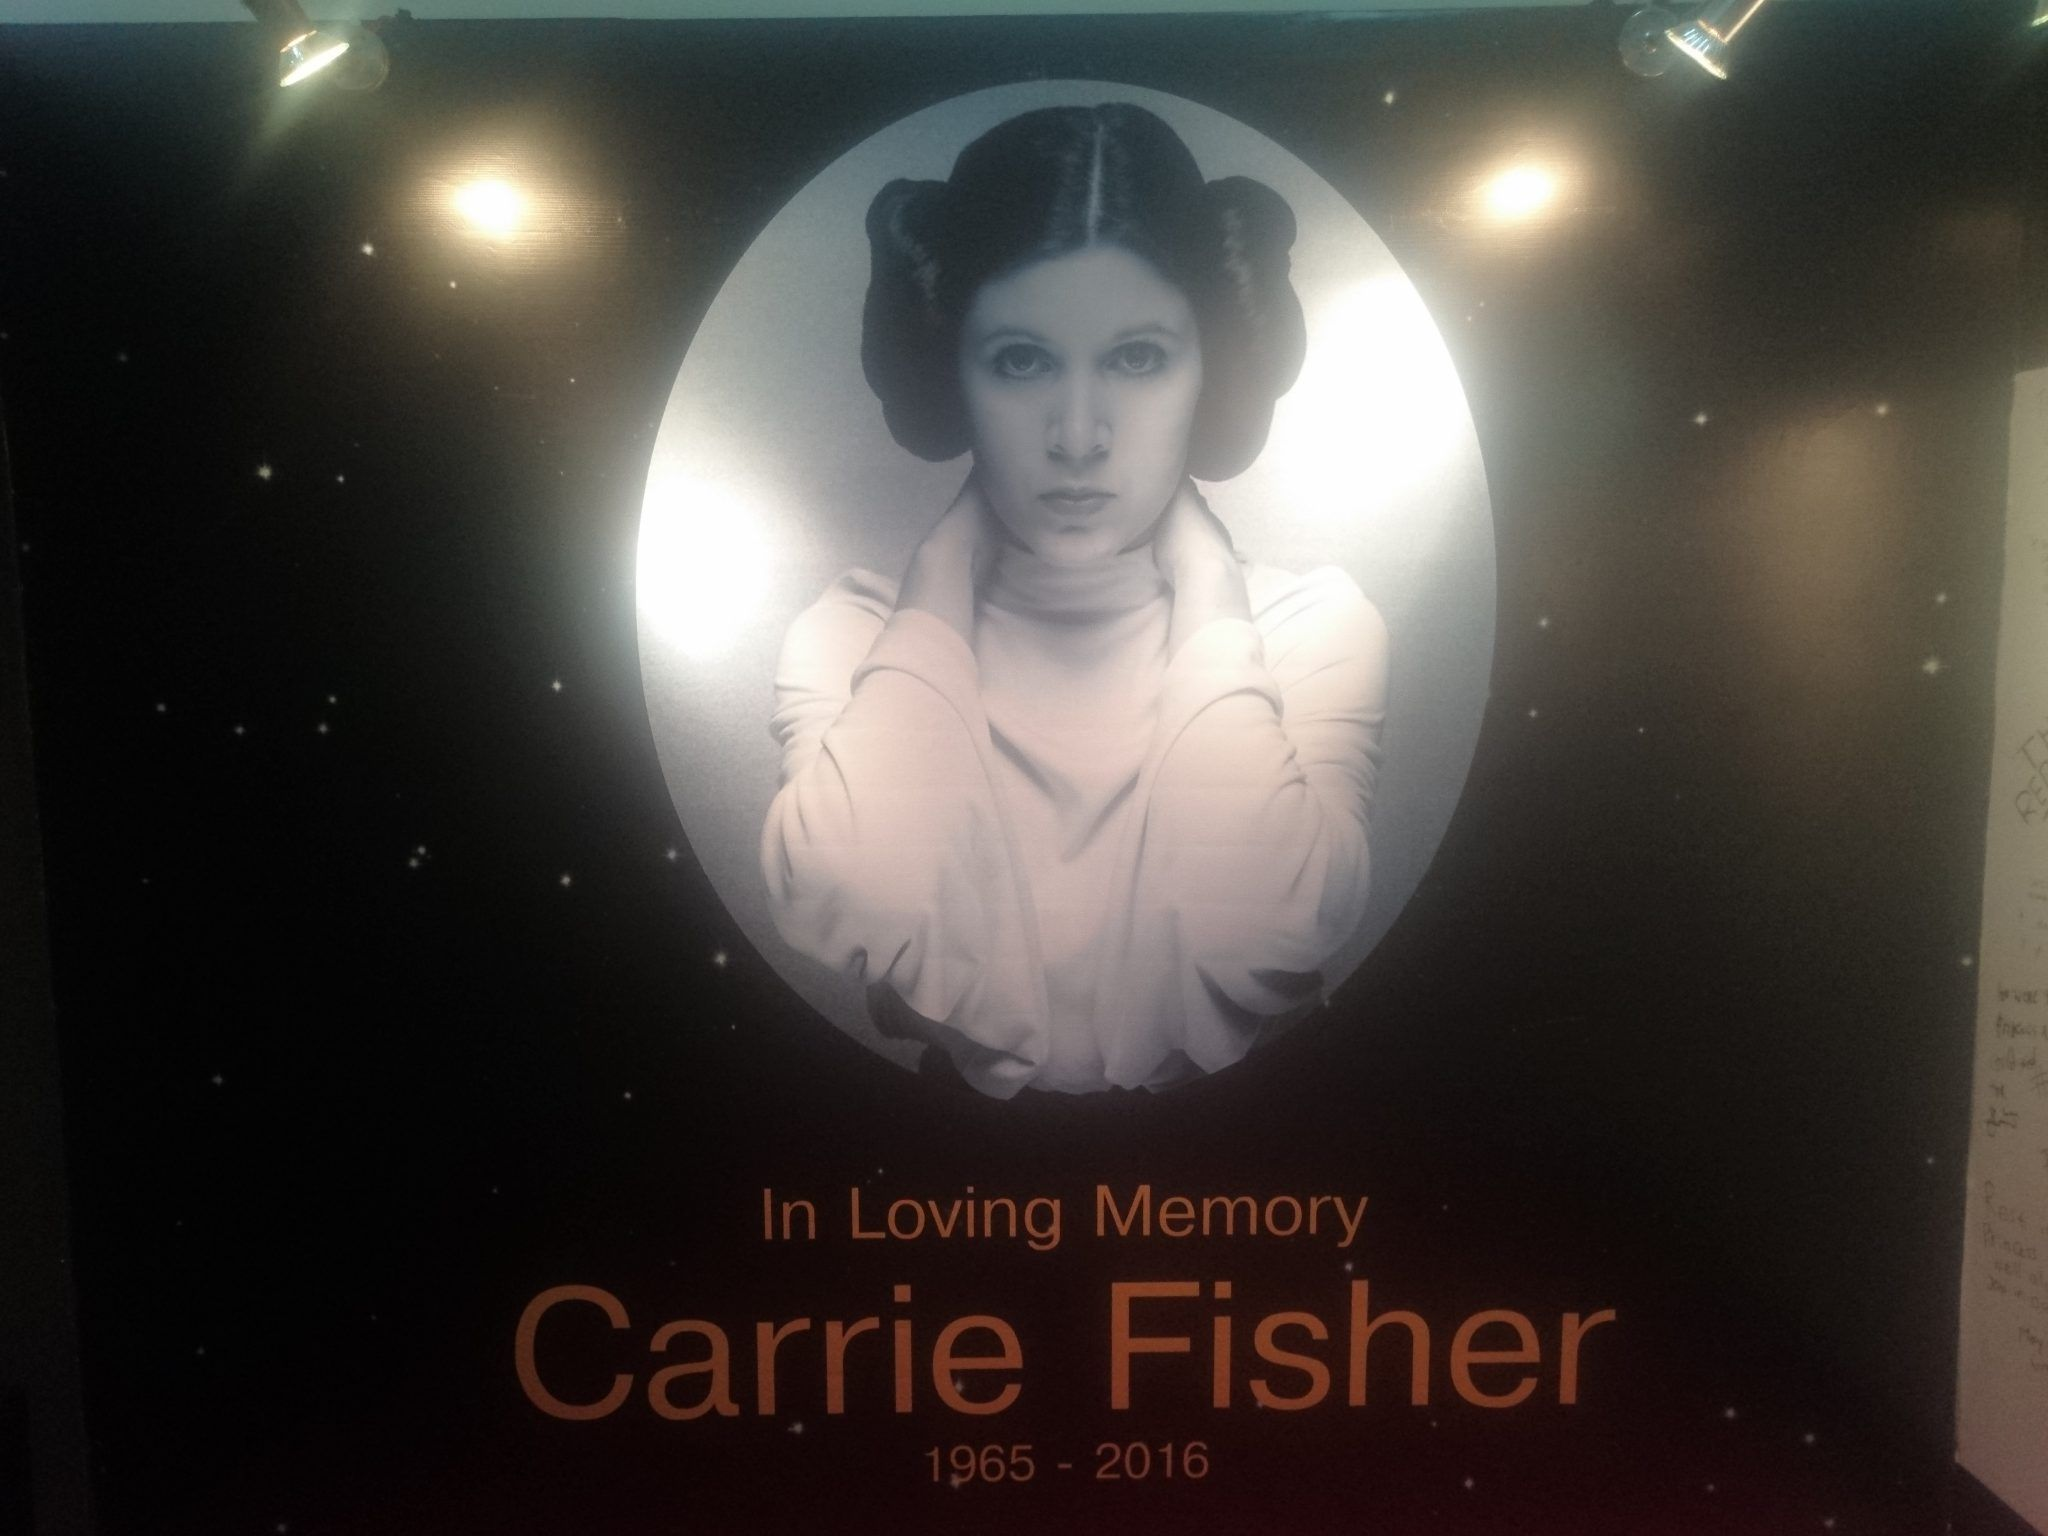 In Loving Memory Carrie Fisher 1965-2016